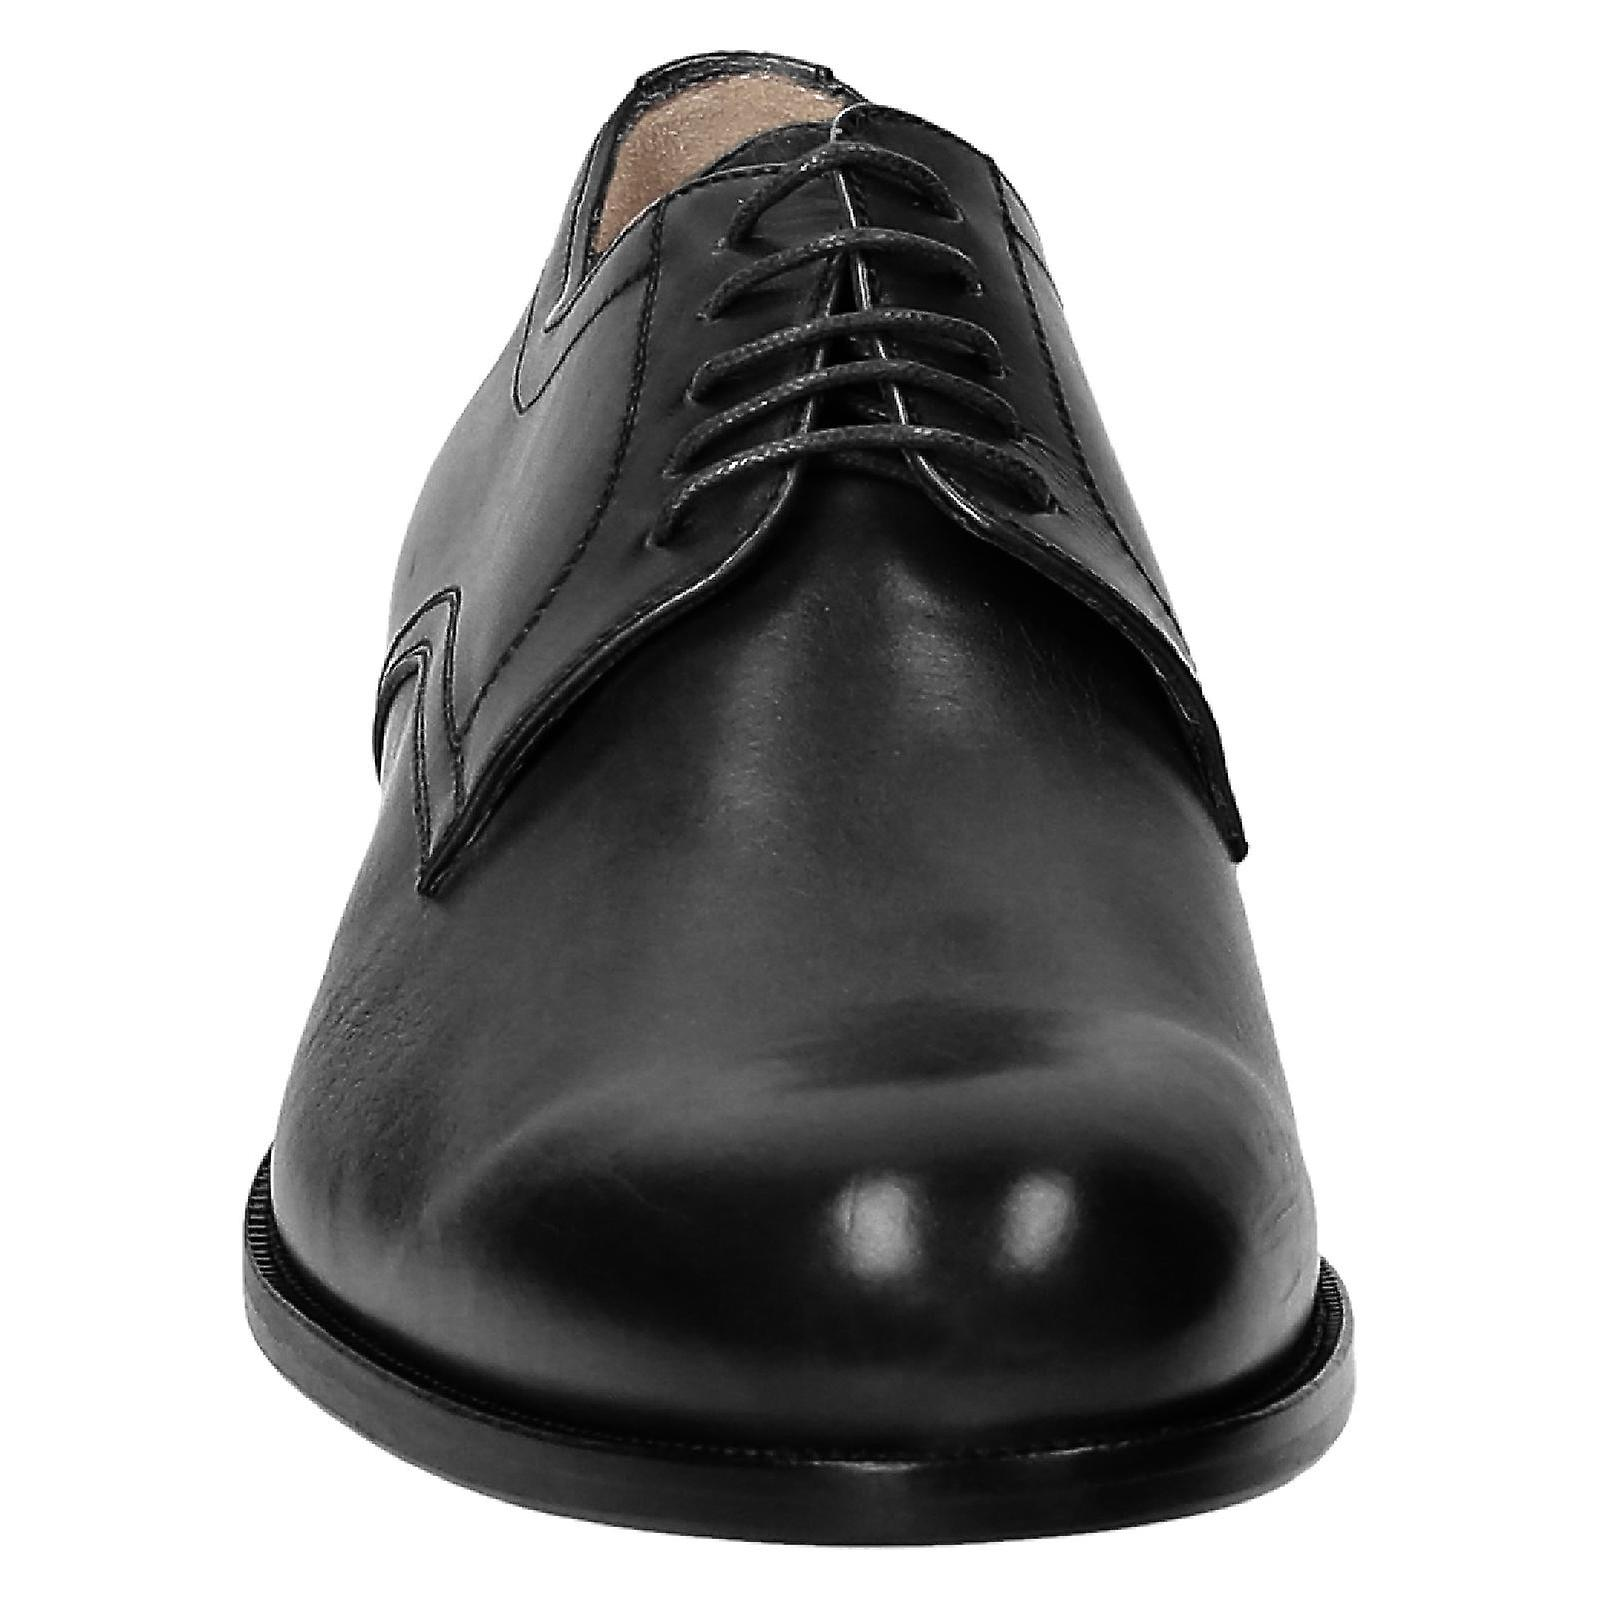 Handmade black derby shoes for men Made in Italy